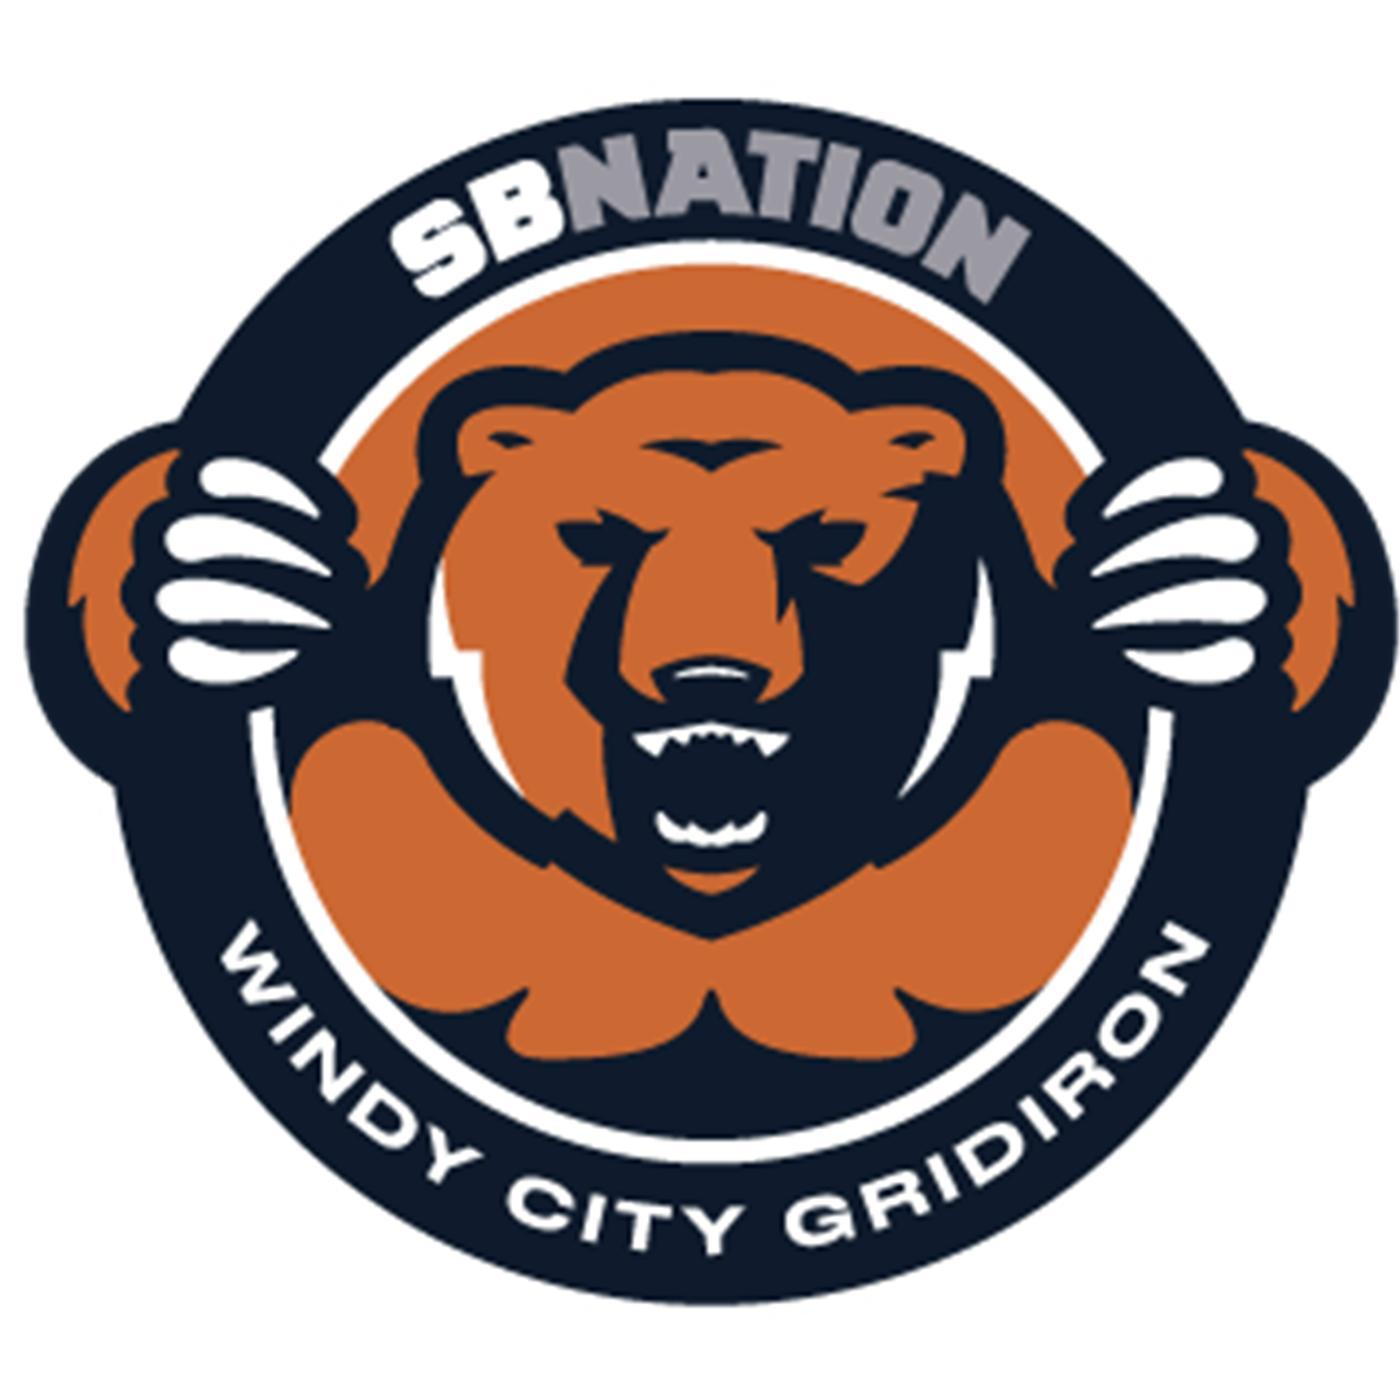 finest selection dc7f3 0144e Windy City Gridiron: for Chicago Bears fans | Listen via ...